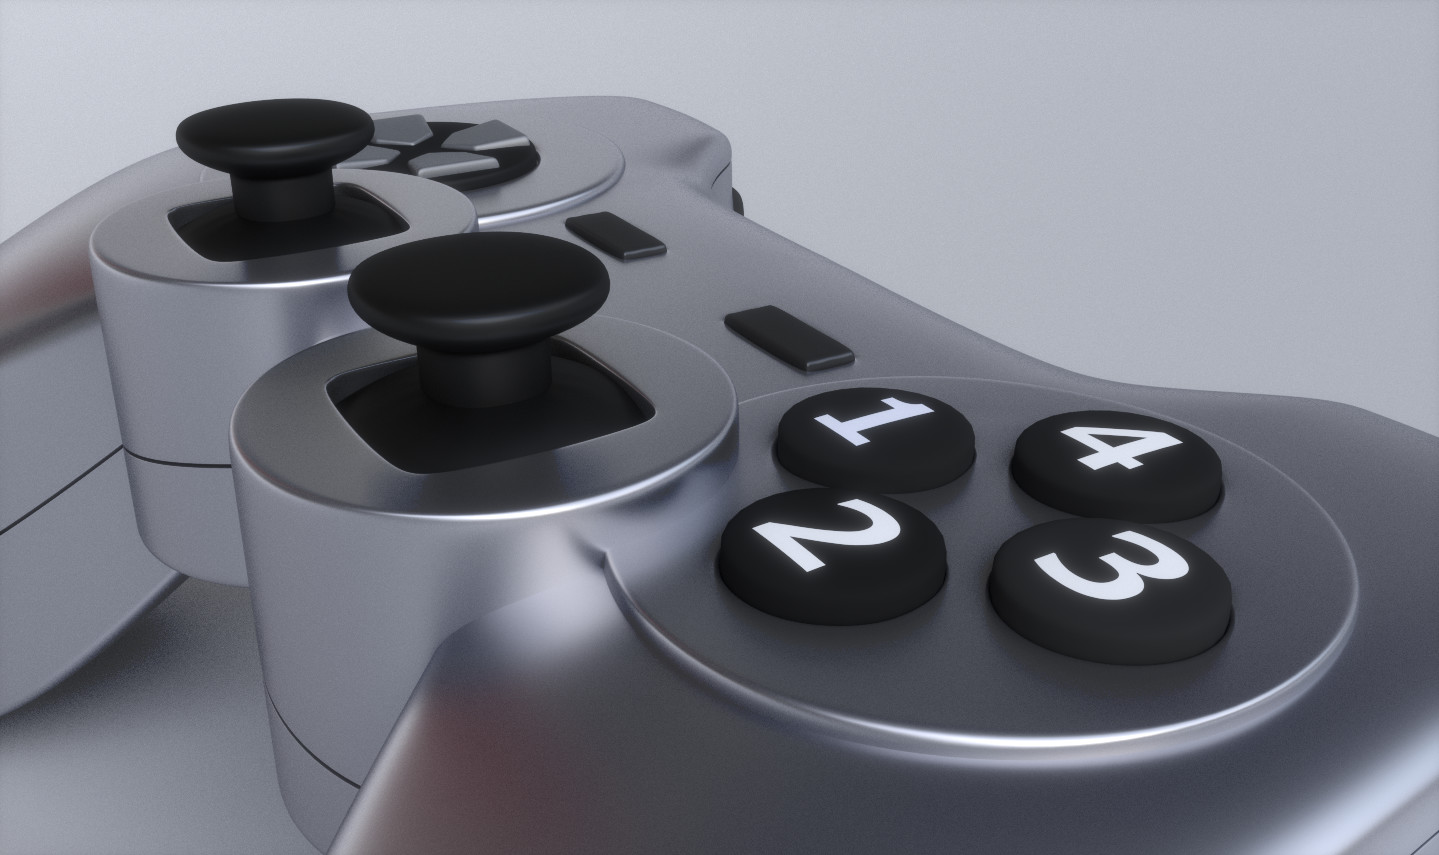 Here is another view of the controller.